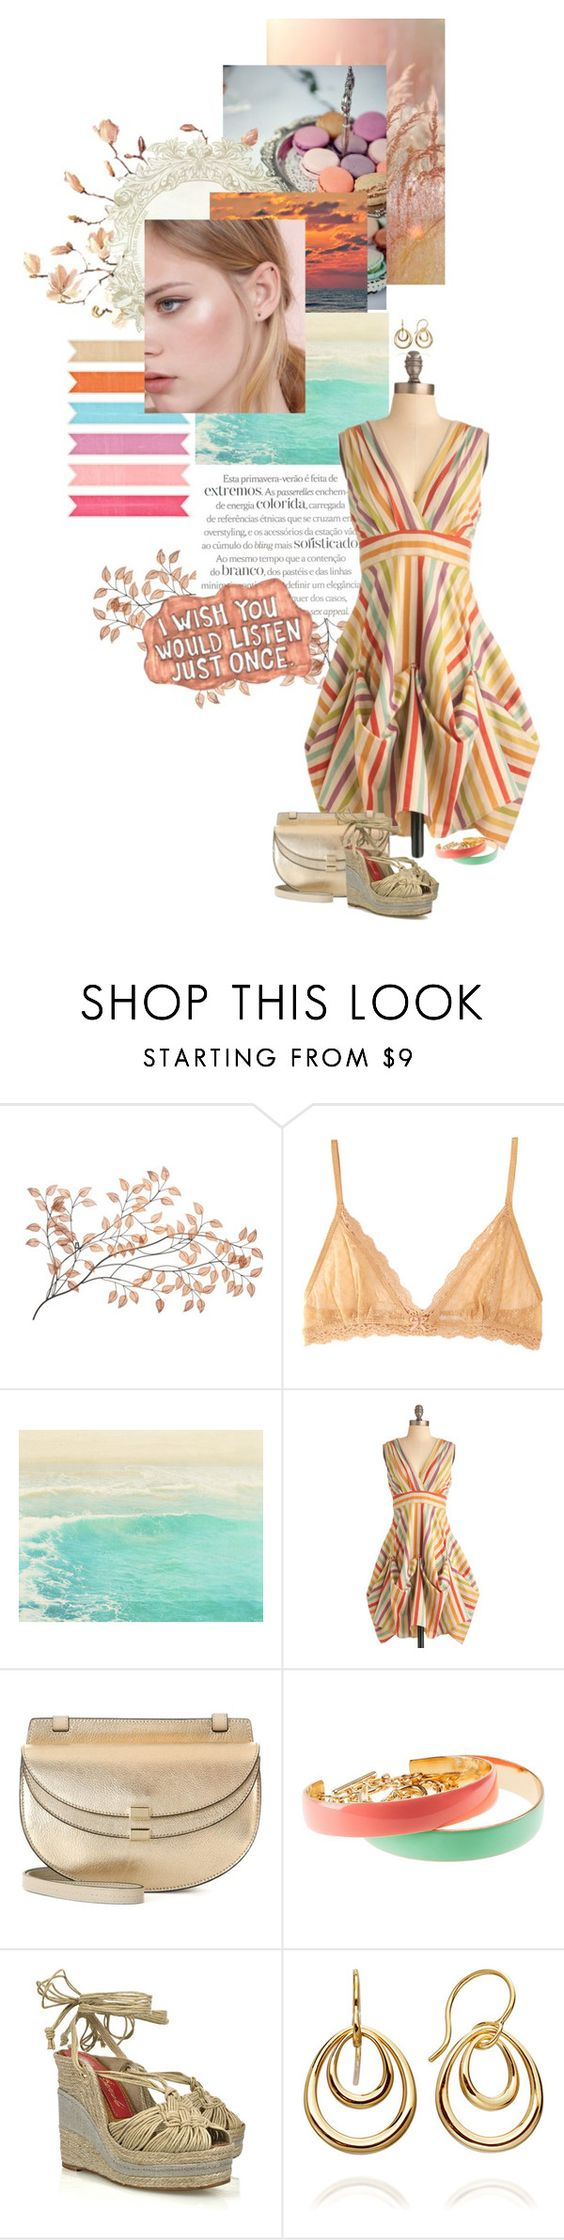 """just once..."" by summersdream ❤ liked on Polyvore featuring Eberjey, Sharpie, Eva Franco, Chloé, H&M, Paloma Barceló and Dinny Hall"